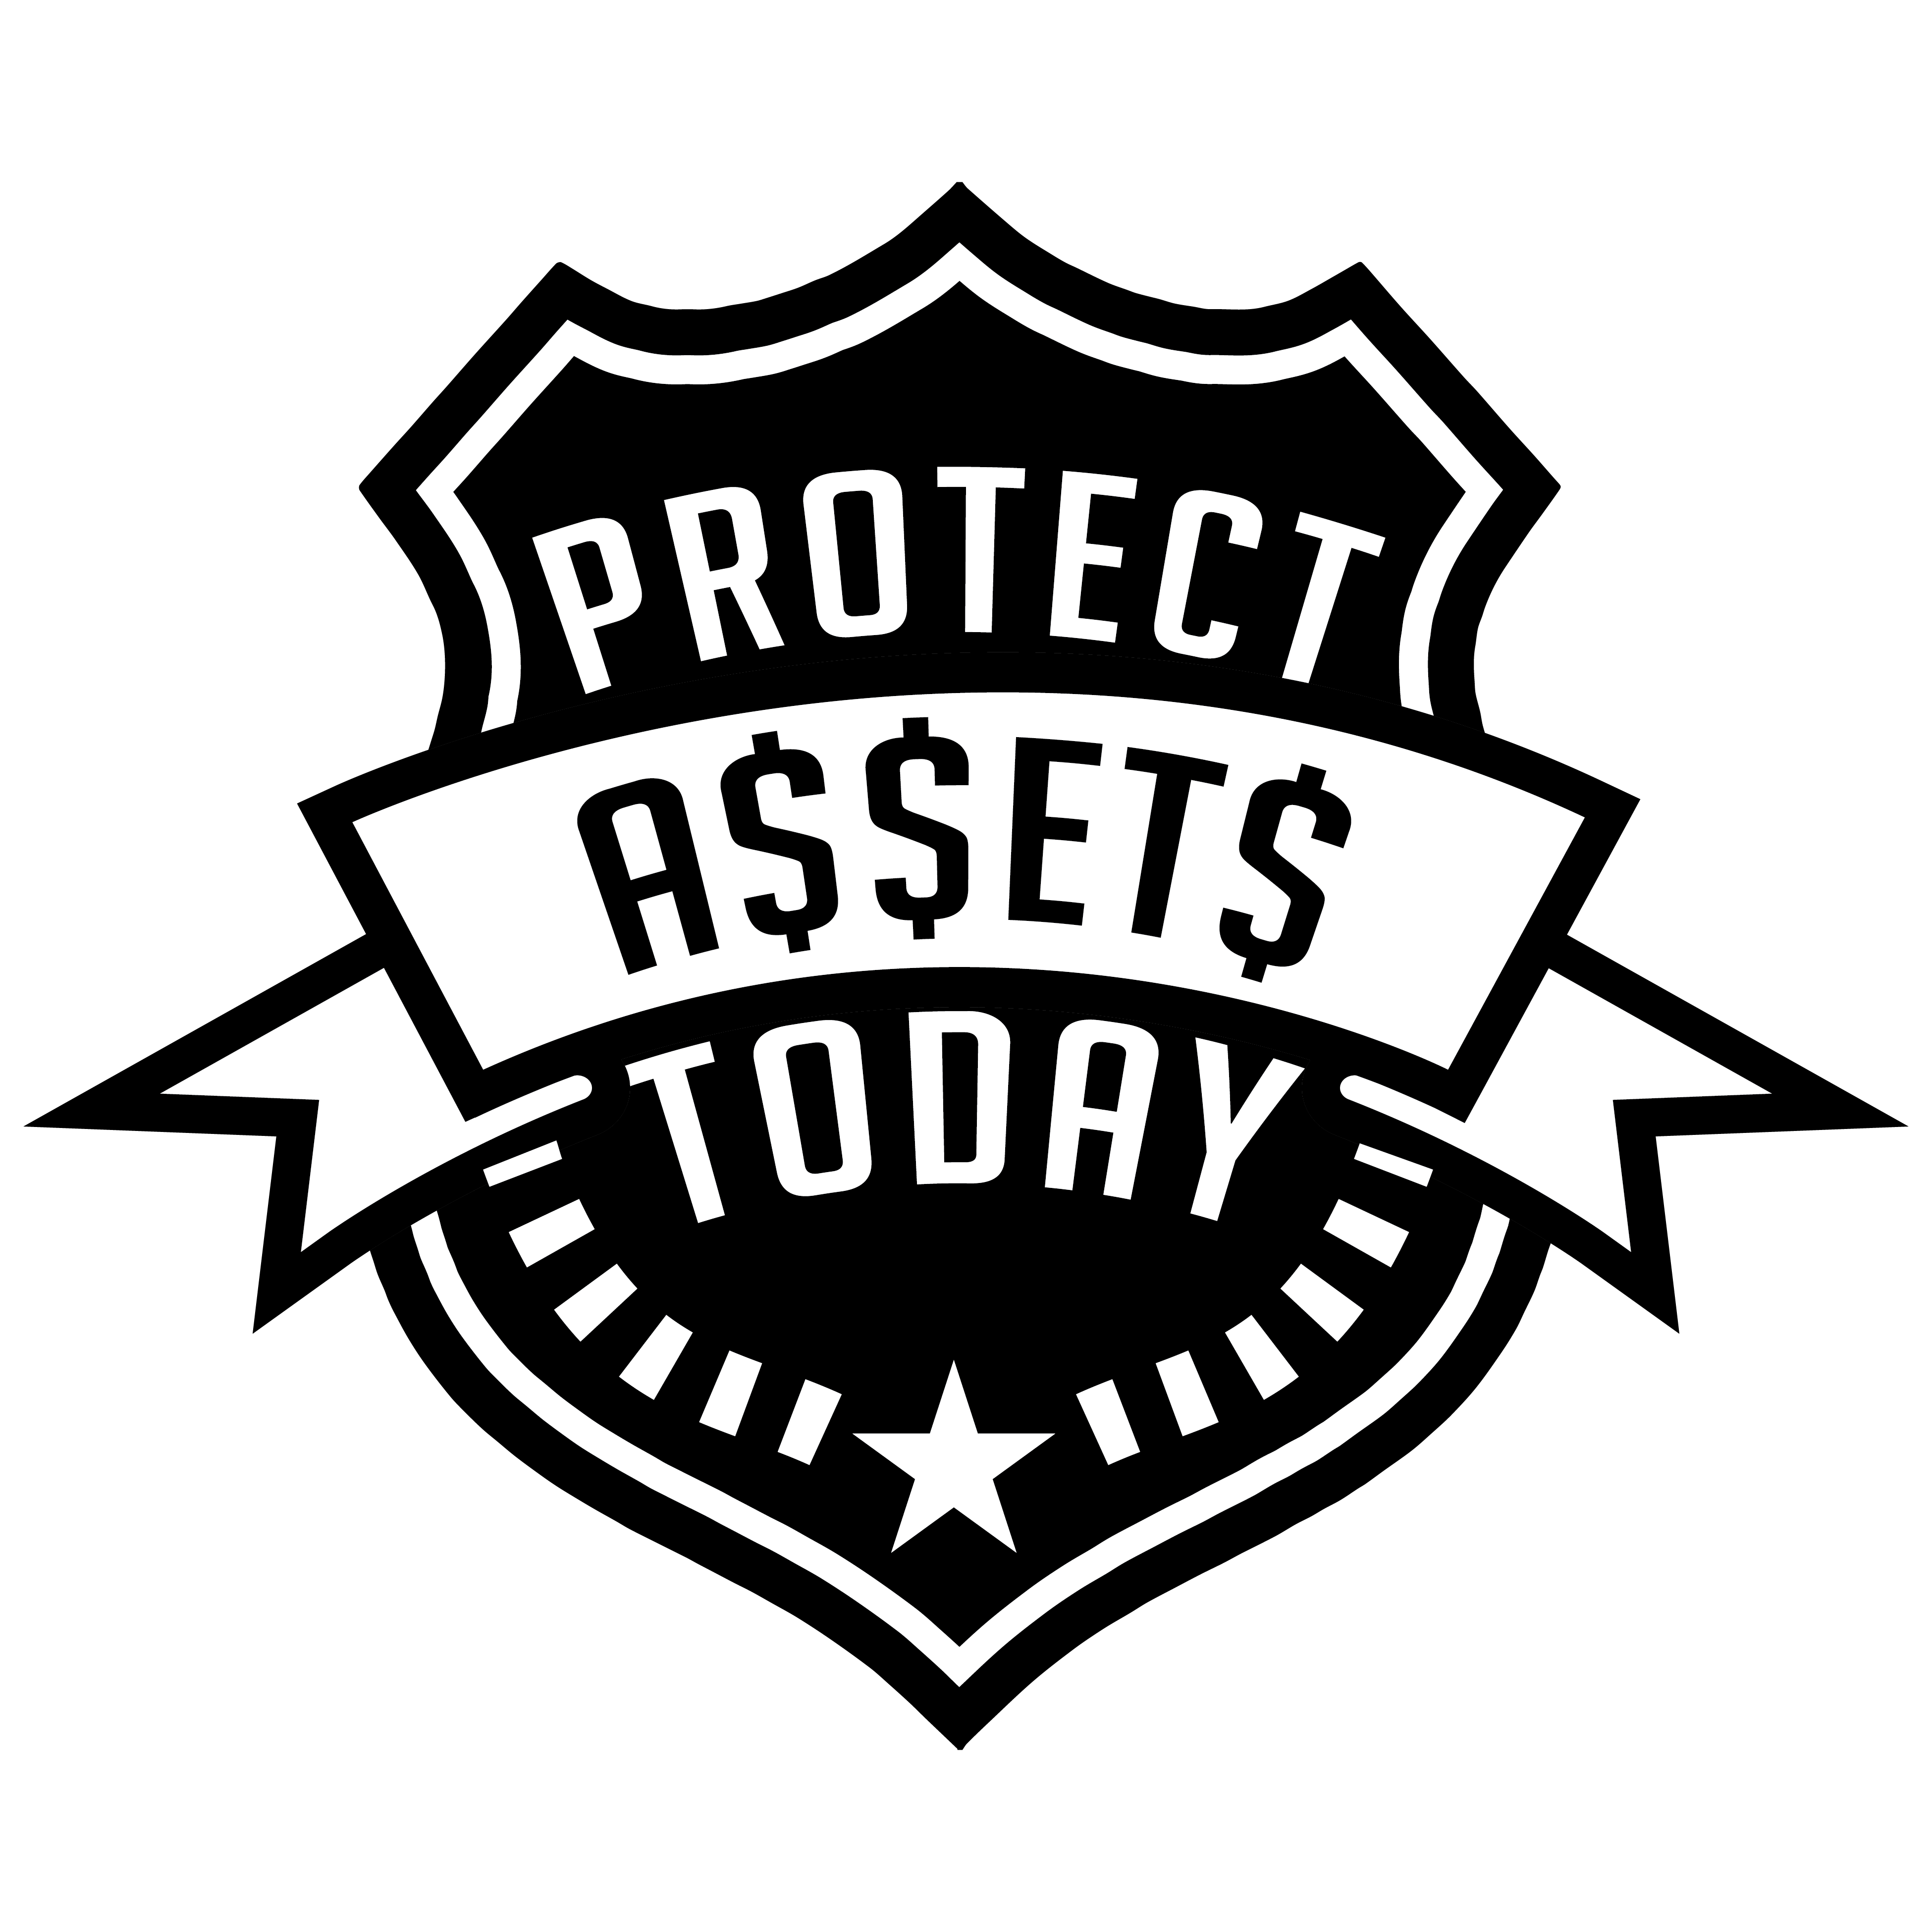 Protect Assets Today